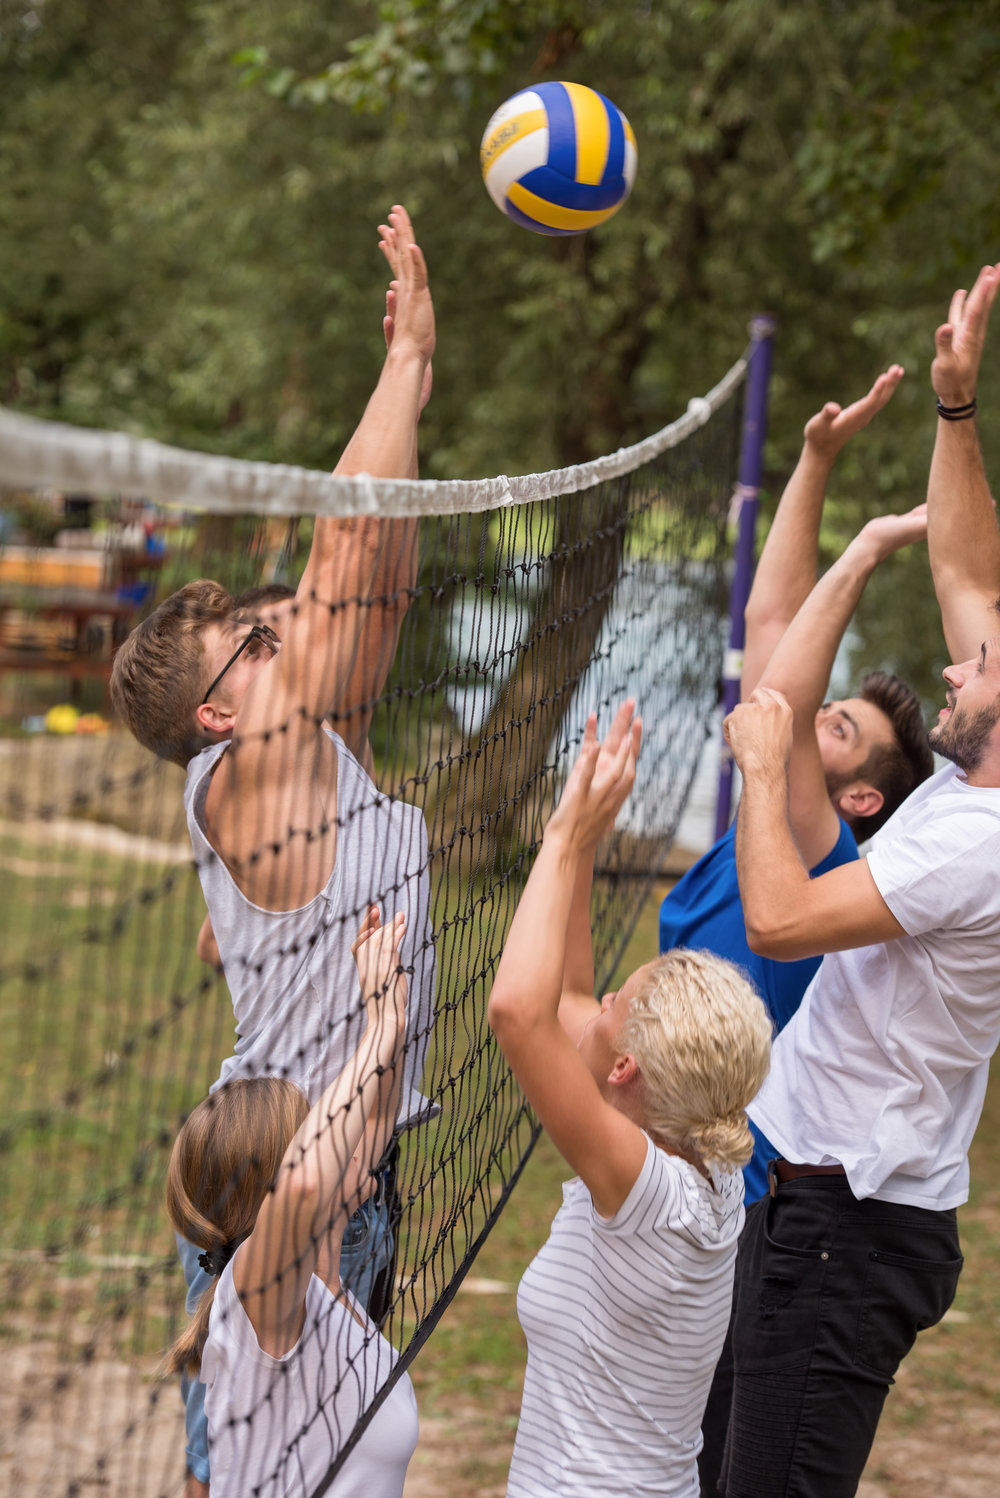 group-of-young-friends-playing-beach-volleyball-D9R2NJB.JPG